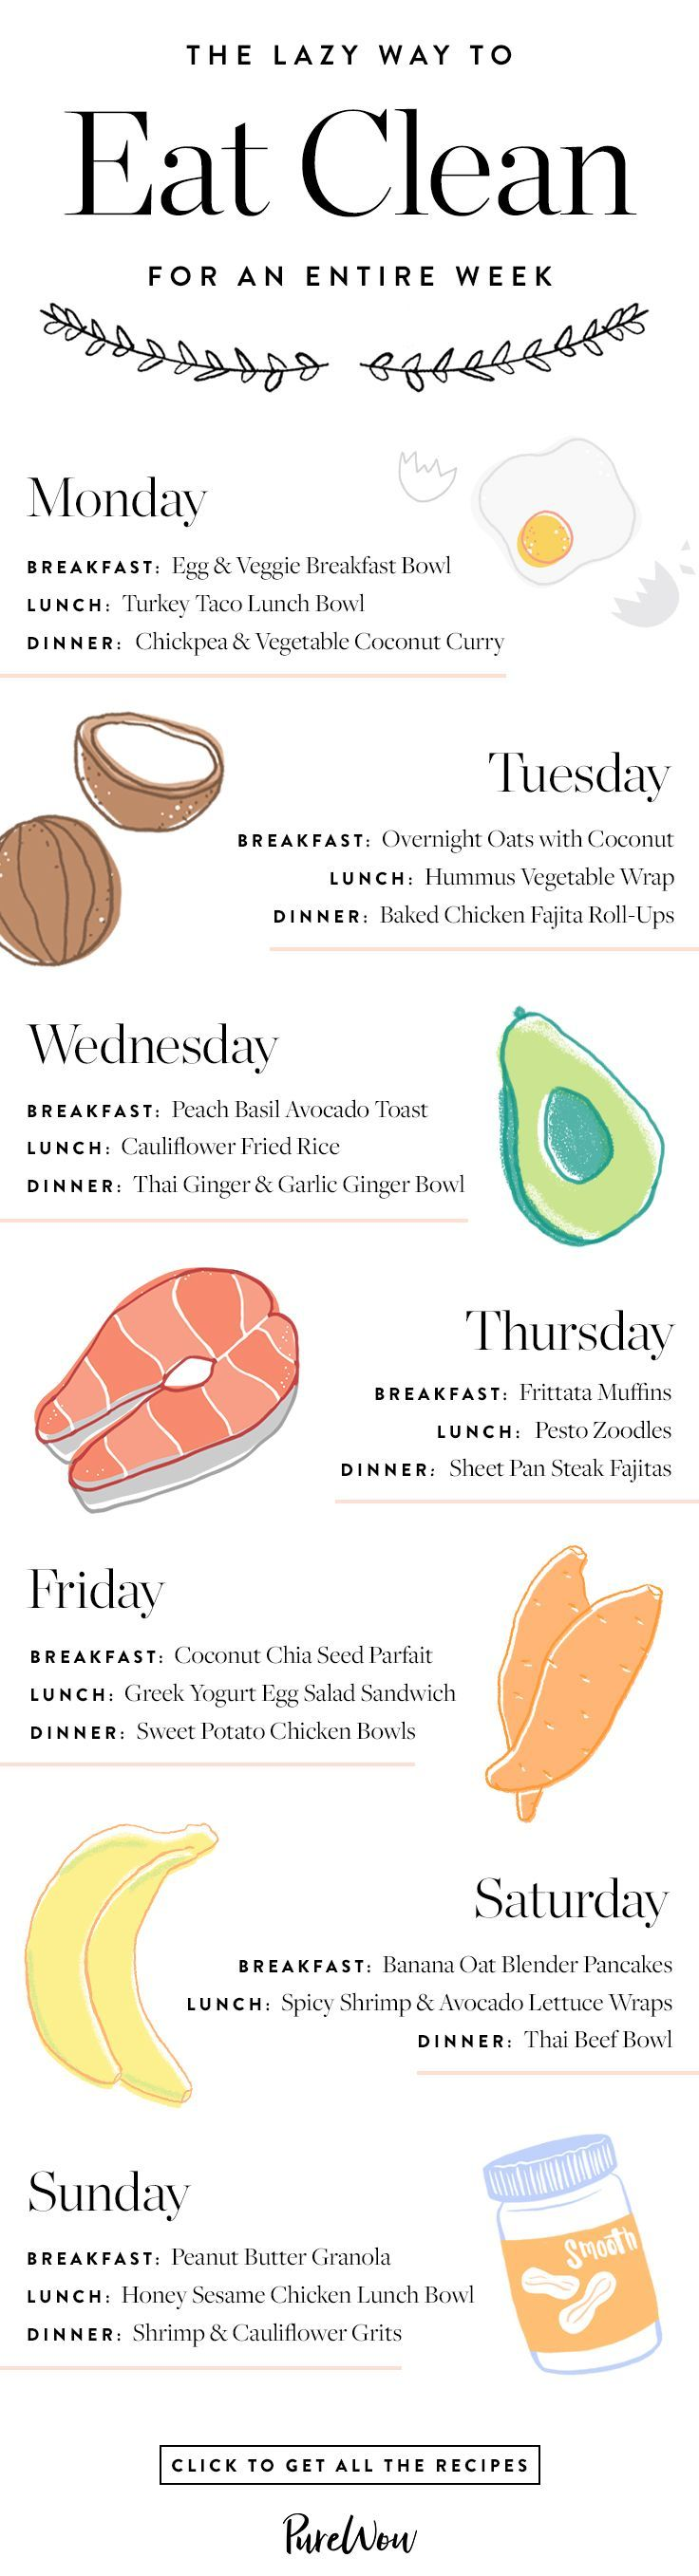 The Lazy Way to Eat Clean!